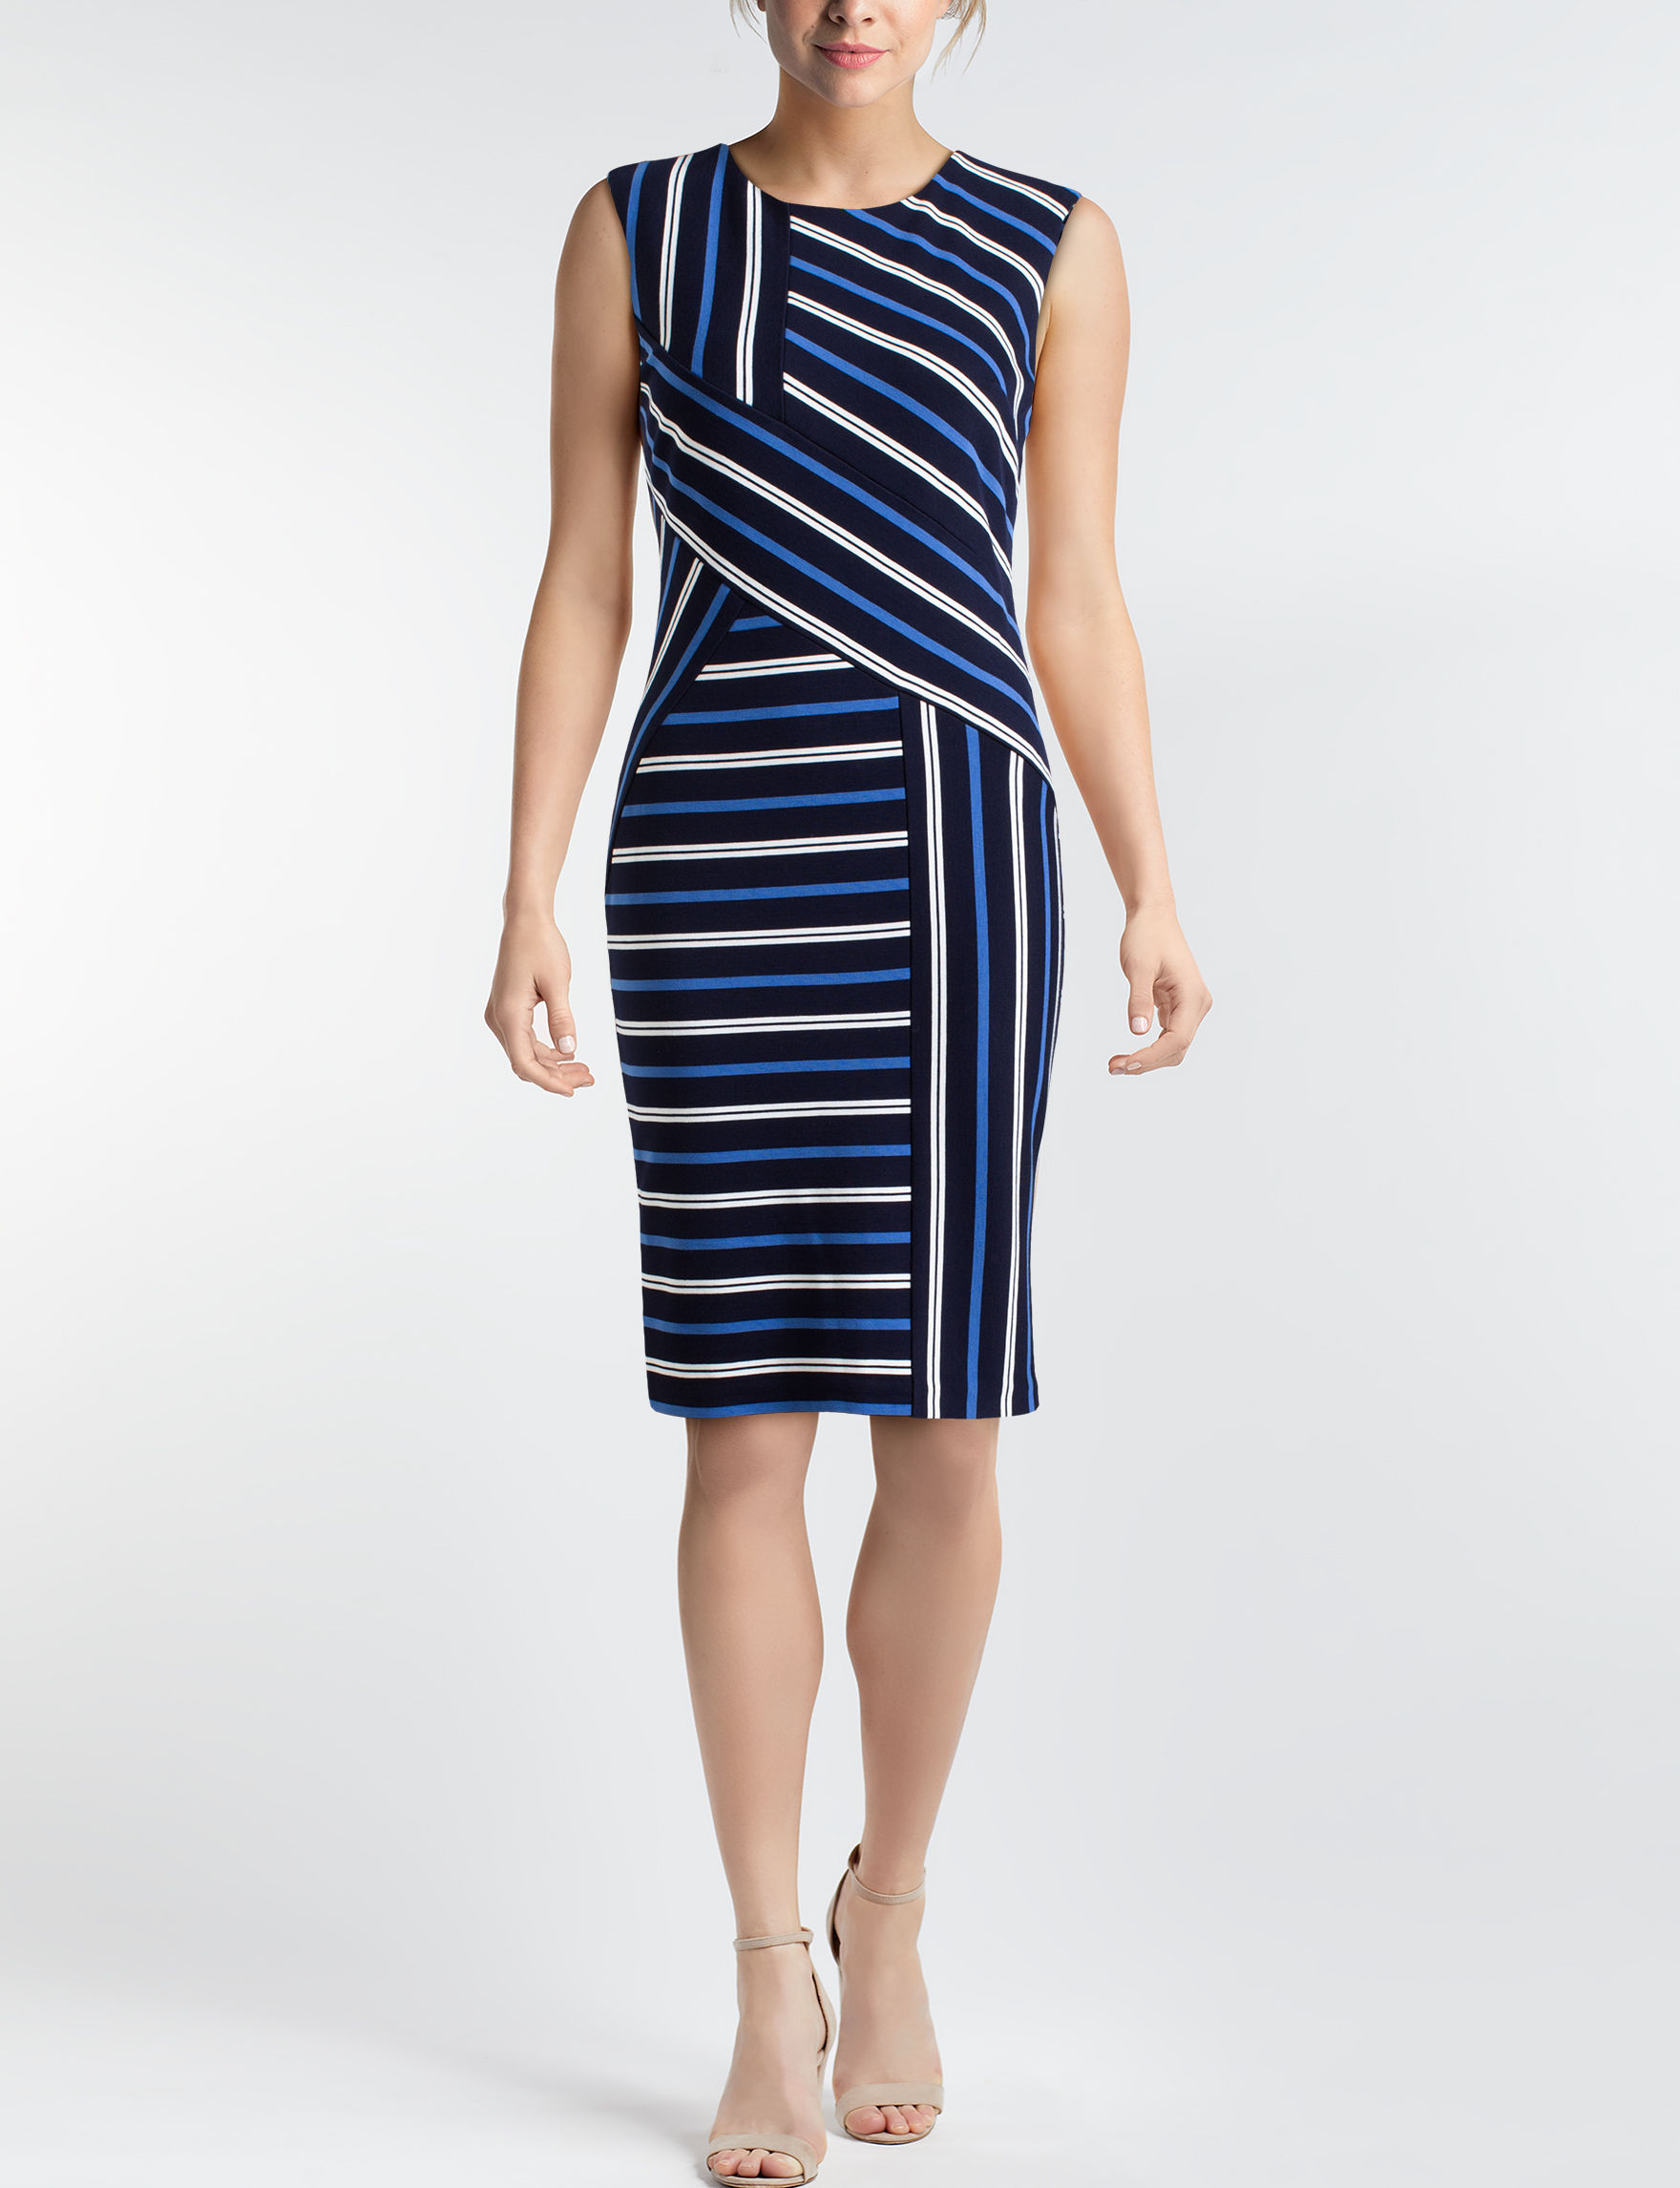 Beige by ECI Navy Everyday & Casual Sheath Dresses